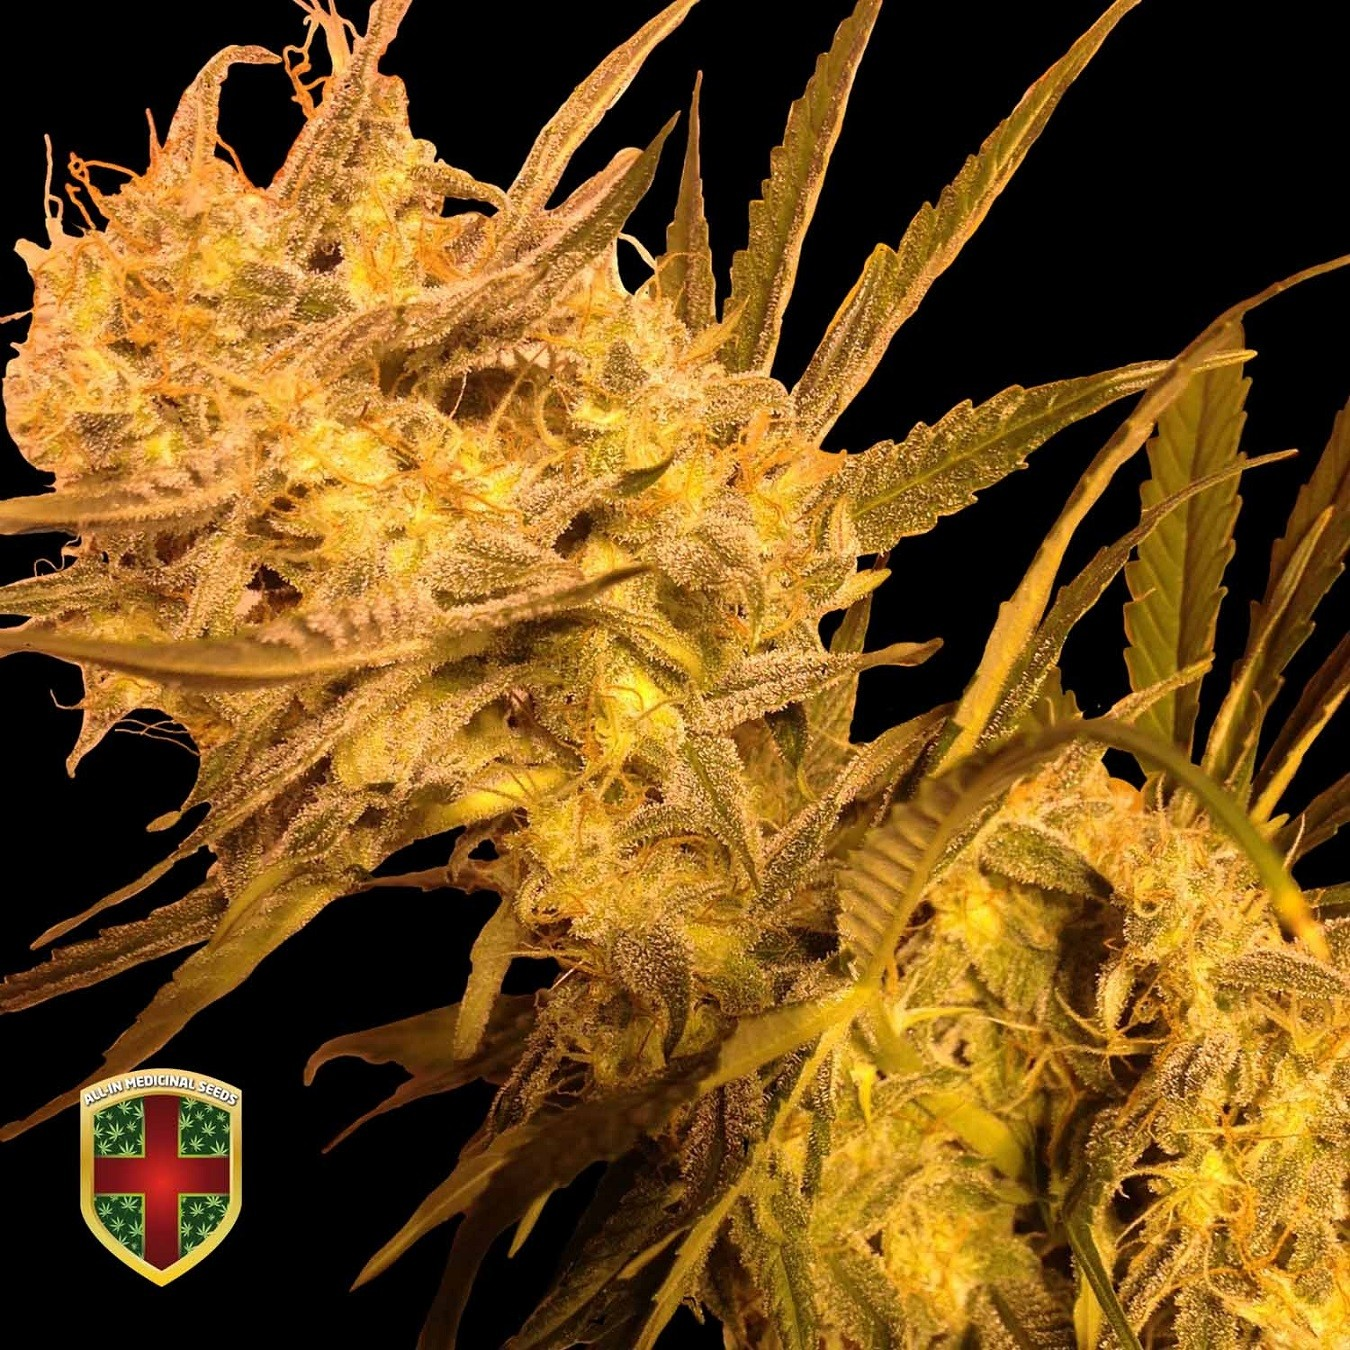 BENEDICTA - 3 UNDS. FEM - ALL IN MEDICINAL - ALL-IN MEDICINAL SEEDS